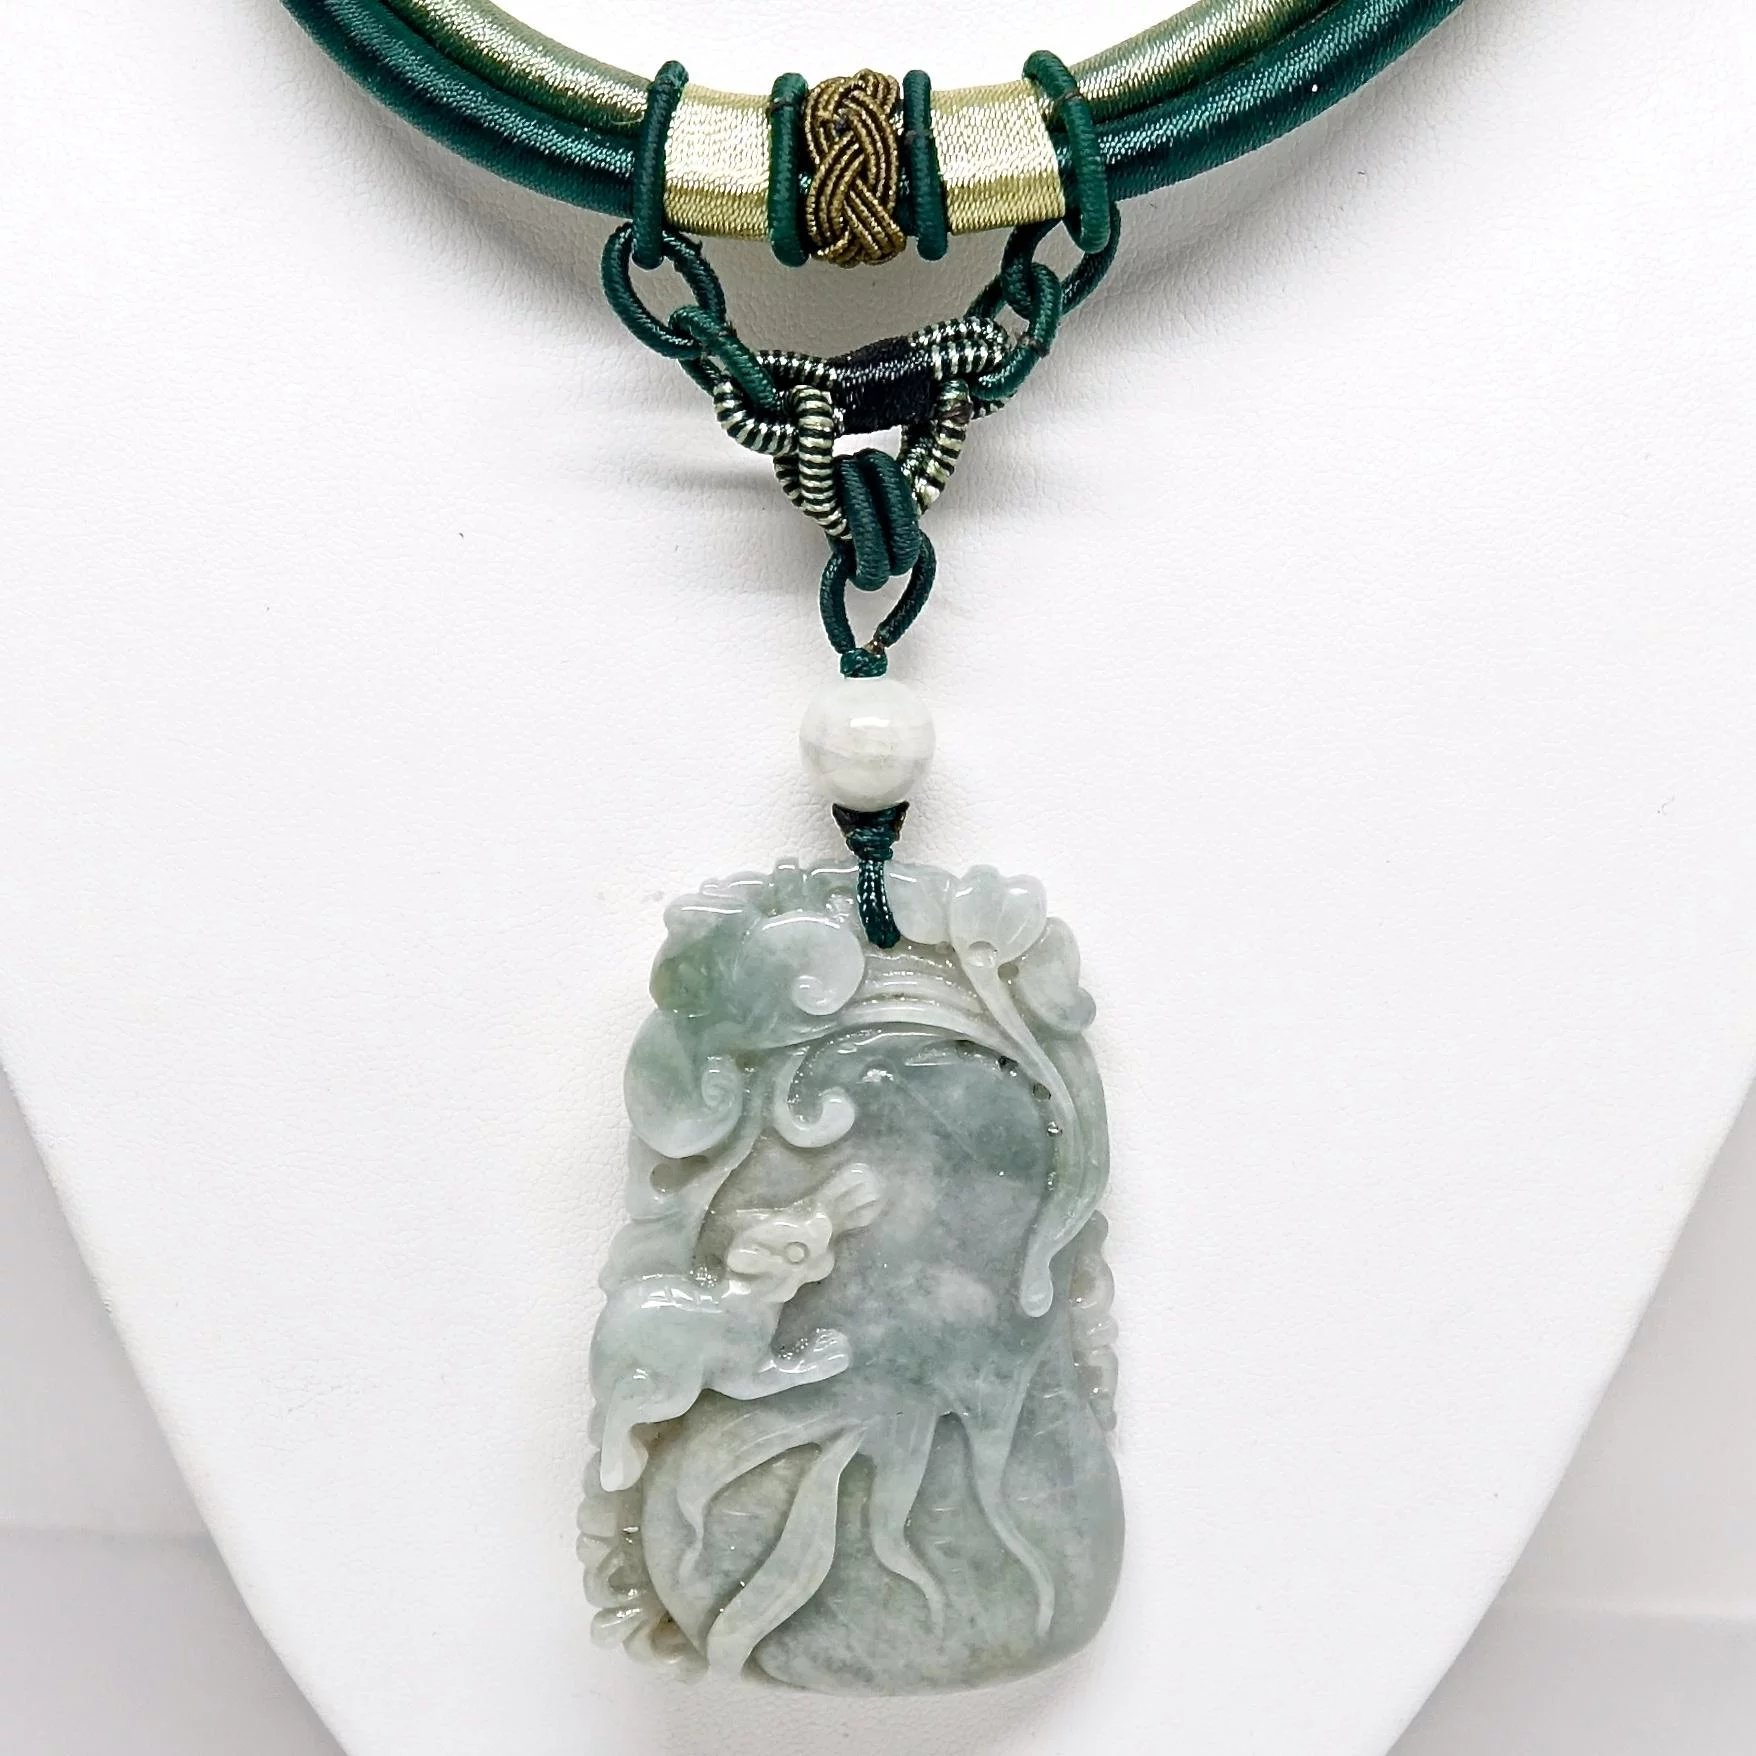 sale id master faux jade for jewelry at v gold castelcliff n vintage necklaces castlecliff pendant and f necklace carved